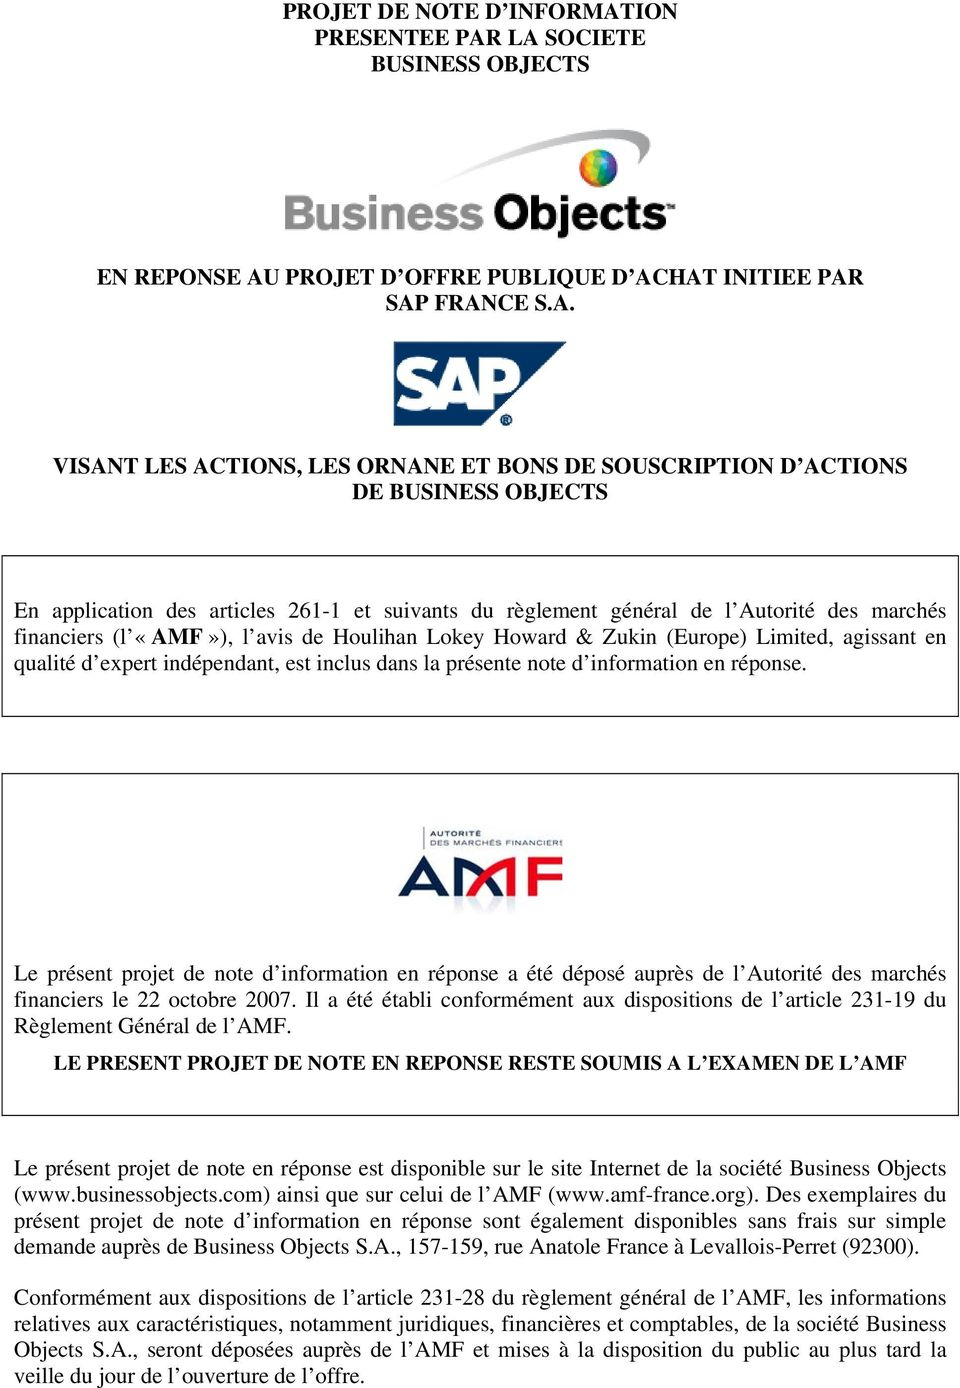 LA SOCIETE BUSINESS OBJECTS EN REPONSE AU PROJET D OFFRE PUBLIQUE D ACHAT INITIEE PAR SAP FRANCE S.A. VISANT LES ACTIONS, LES ORNANE ET BONS DE SOUSCRIPTION D ACTIONS DE BUSINESS OBJECTS En